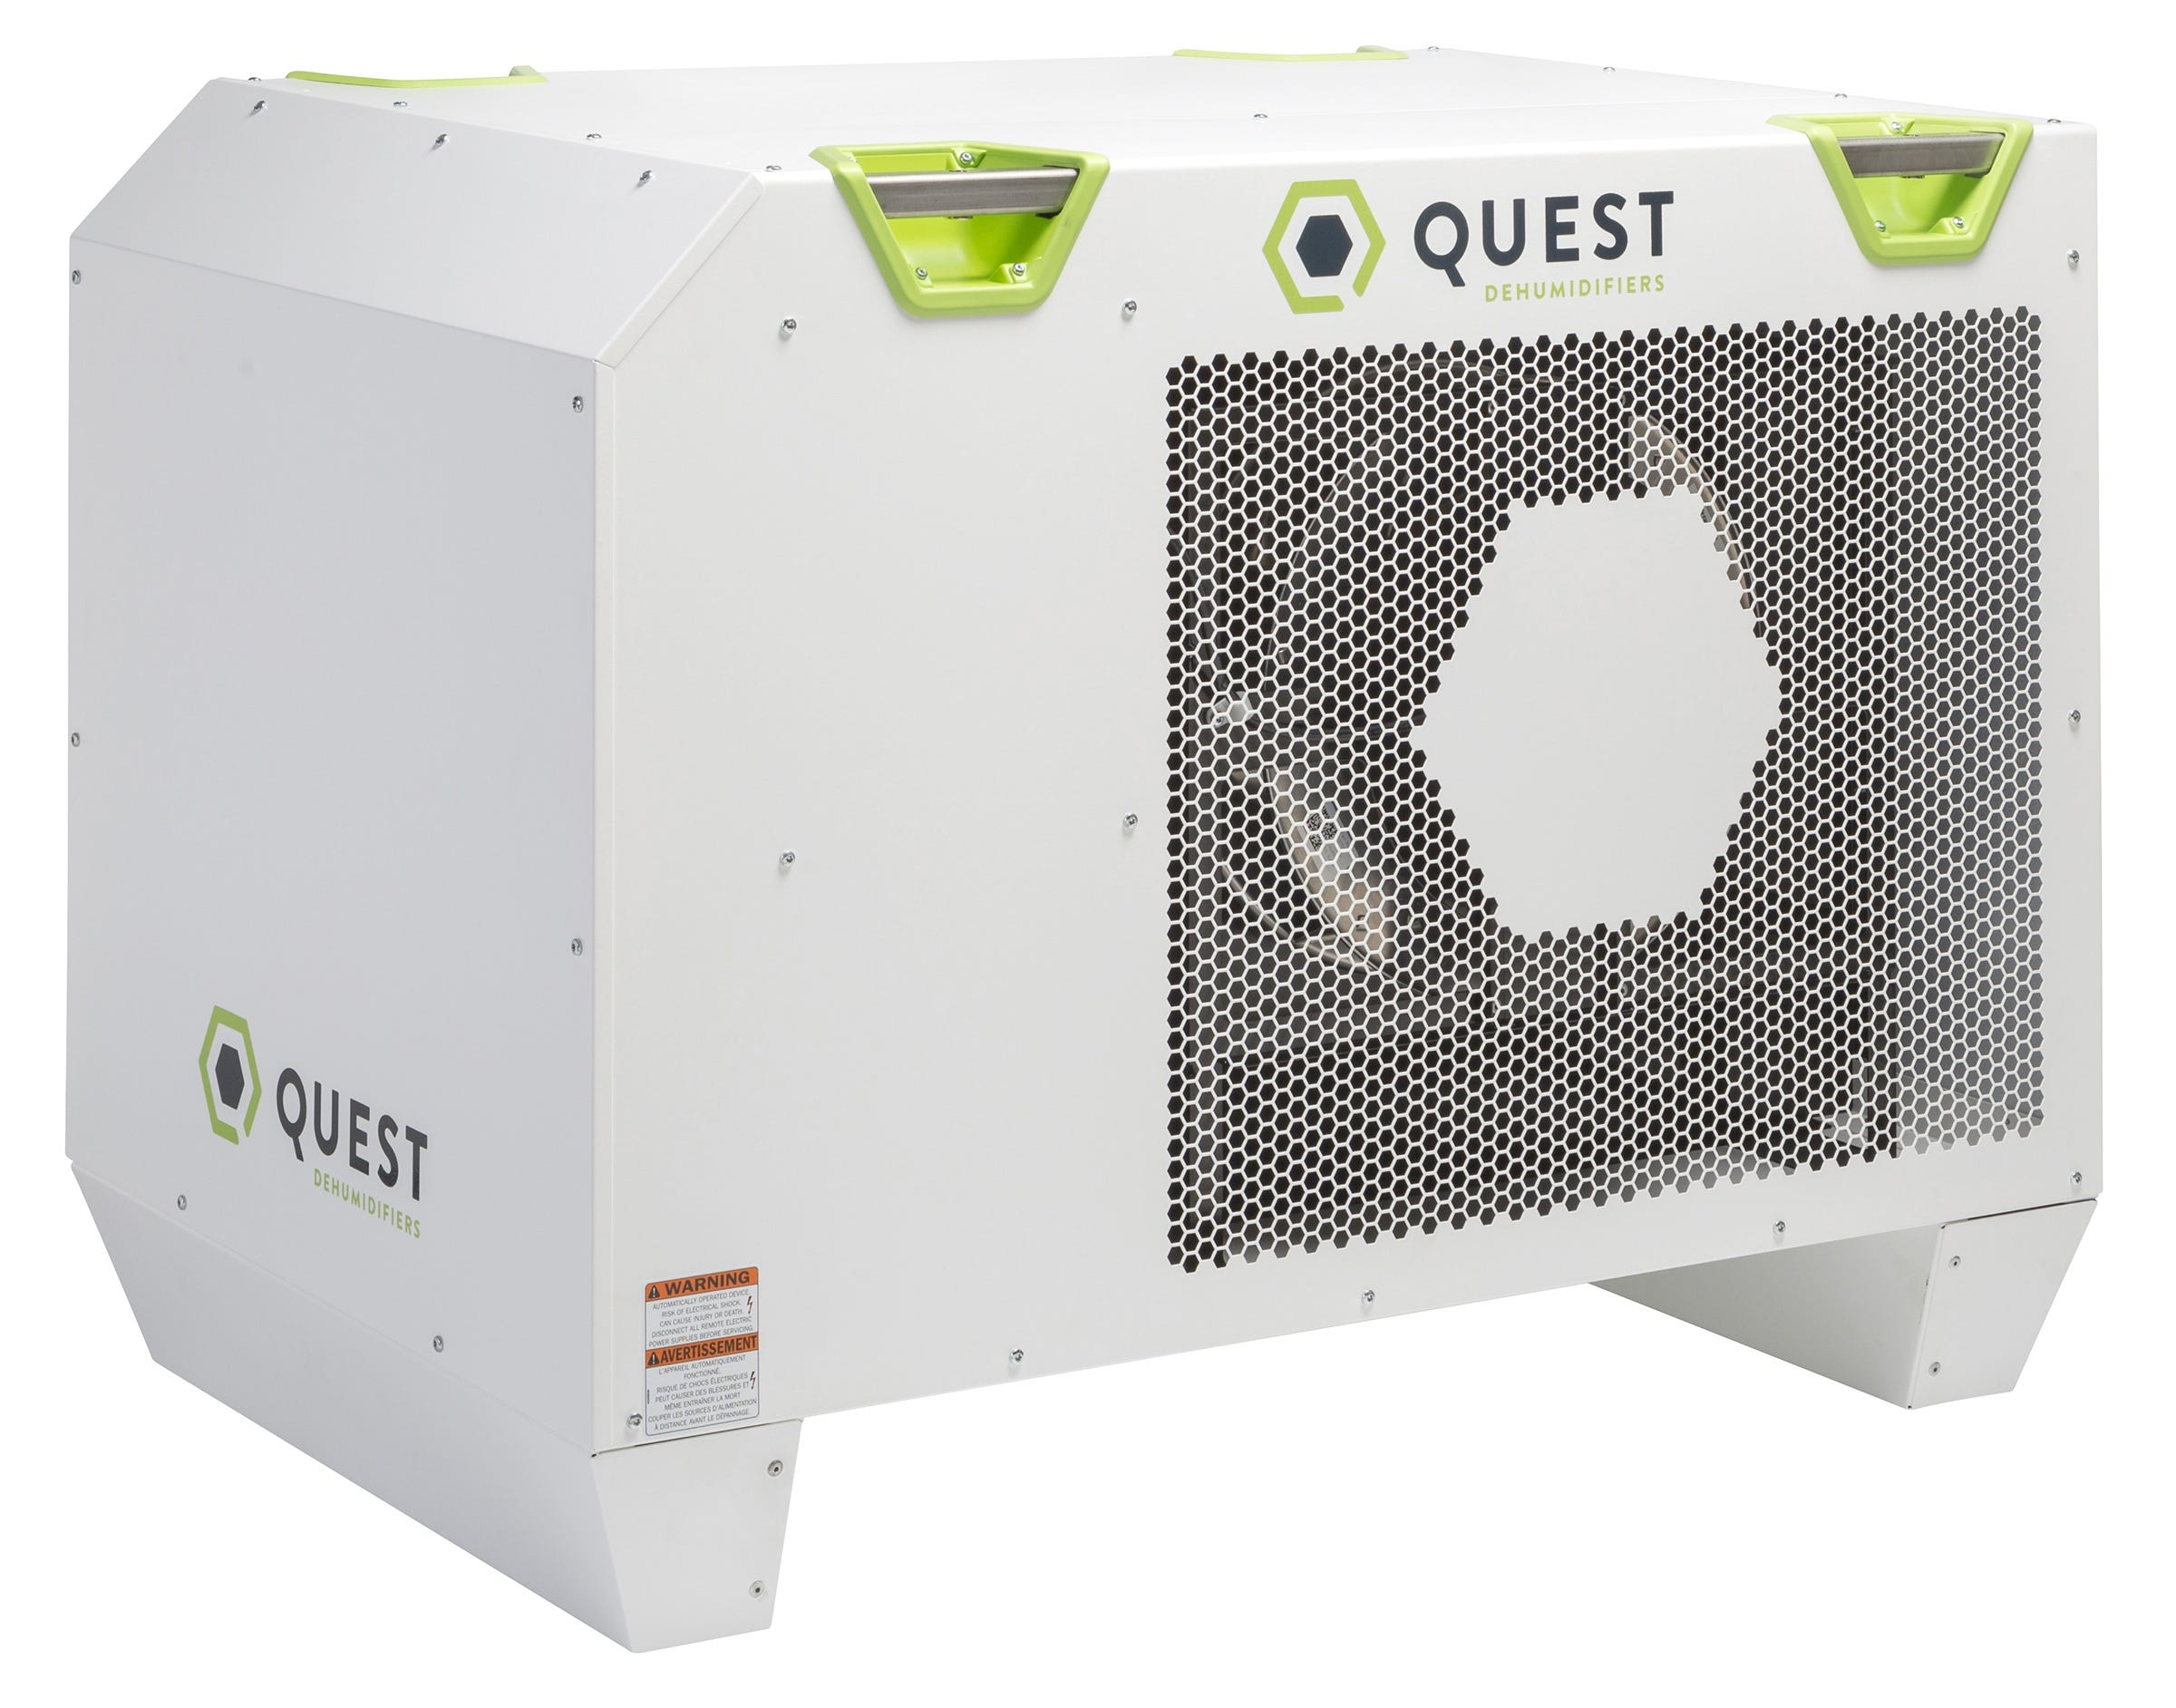 Quest 506 Commercial Dehumidifier 500 Pint - Factory Remanufactured - 3 Year Warranty Quest 506 Commercial Dehumidifer 500 Pint The Quest 506 is the first 500 pint, 230 volt 1 phase, commercial dehumidifier designed for commercial growing at scale. Like all Quest products it can be placed at ground level for immediate operation or hung overhead and out of the way. The Quest 506 Commercial Dehumidifer is the most energy efficient high capacity dehumidifier. It uses only 11 amps while running at a maximum efficiency of 8.1 pints/kWh. It is made in the USA. This model comes standard with MERV-11 filtration. The filtration can capture particles (including mold spores) down to 1 micron in size. An additional Humidistat is required, we recommend the DEH 3000R Wall Mounted unit part #700833. There is a 1 year parts and labor warranty and a 5 year compressor and refrigerant system warranty. Quest 506 Features: Industry-leading efficiency, most efficient on the market today Patented, refrigeration system High-efficiency, long-life impeller fan Quiet operation Superior air filtration (MERV-13 standard) Auto-restart after power outages Environmentally friendly R410A refrigerant Low voltage control Quest 506 Dehumidifier Specifications: Power (Watts): 2700 Supply voltage: 220-240 VAC - 1 Phase - 60 Hz. Current Draw (Amps): 11.0 Rated Current Draw (Amps): (104°F 36%) 13.6 Energy Factor (L/kWh): 3.8 Operating Temp: 56°F Min - 95°F Max Water Removal (Pints/Day): 506 Efficiency (Pints/kWh): 8.1 Air Filter (MERV-13): (2) Size: 18  x 20  x 2  Power Cord: 14ga 10', NEMA 6-20P Drain Connection: 3/4 Threaded NPT Refrigerant Type: R410A Refrigerant Amount: 4lb. 8oz. Unit Dimentions: 45  x 29  x 34